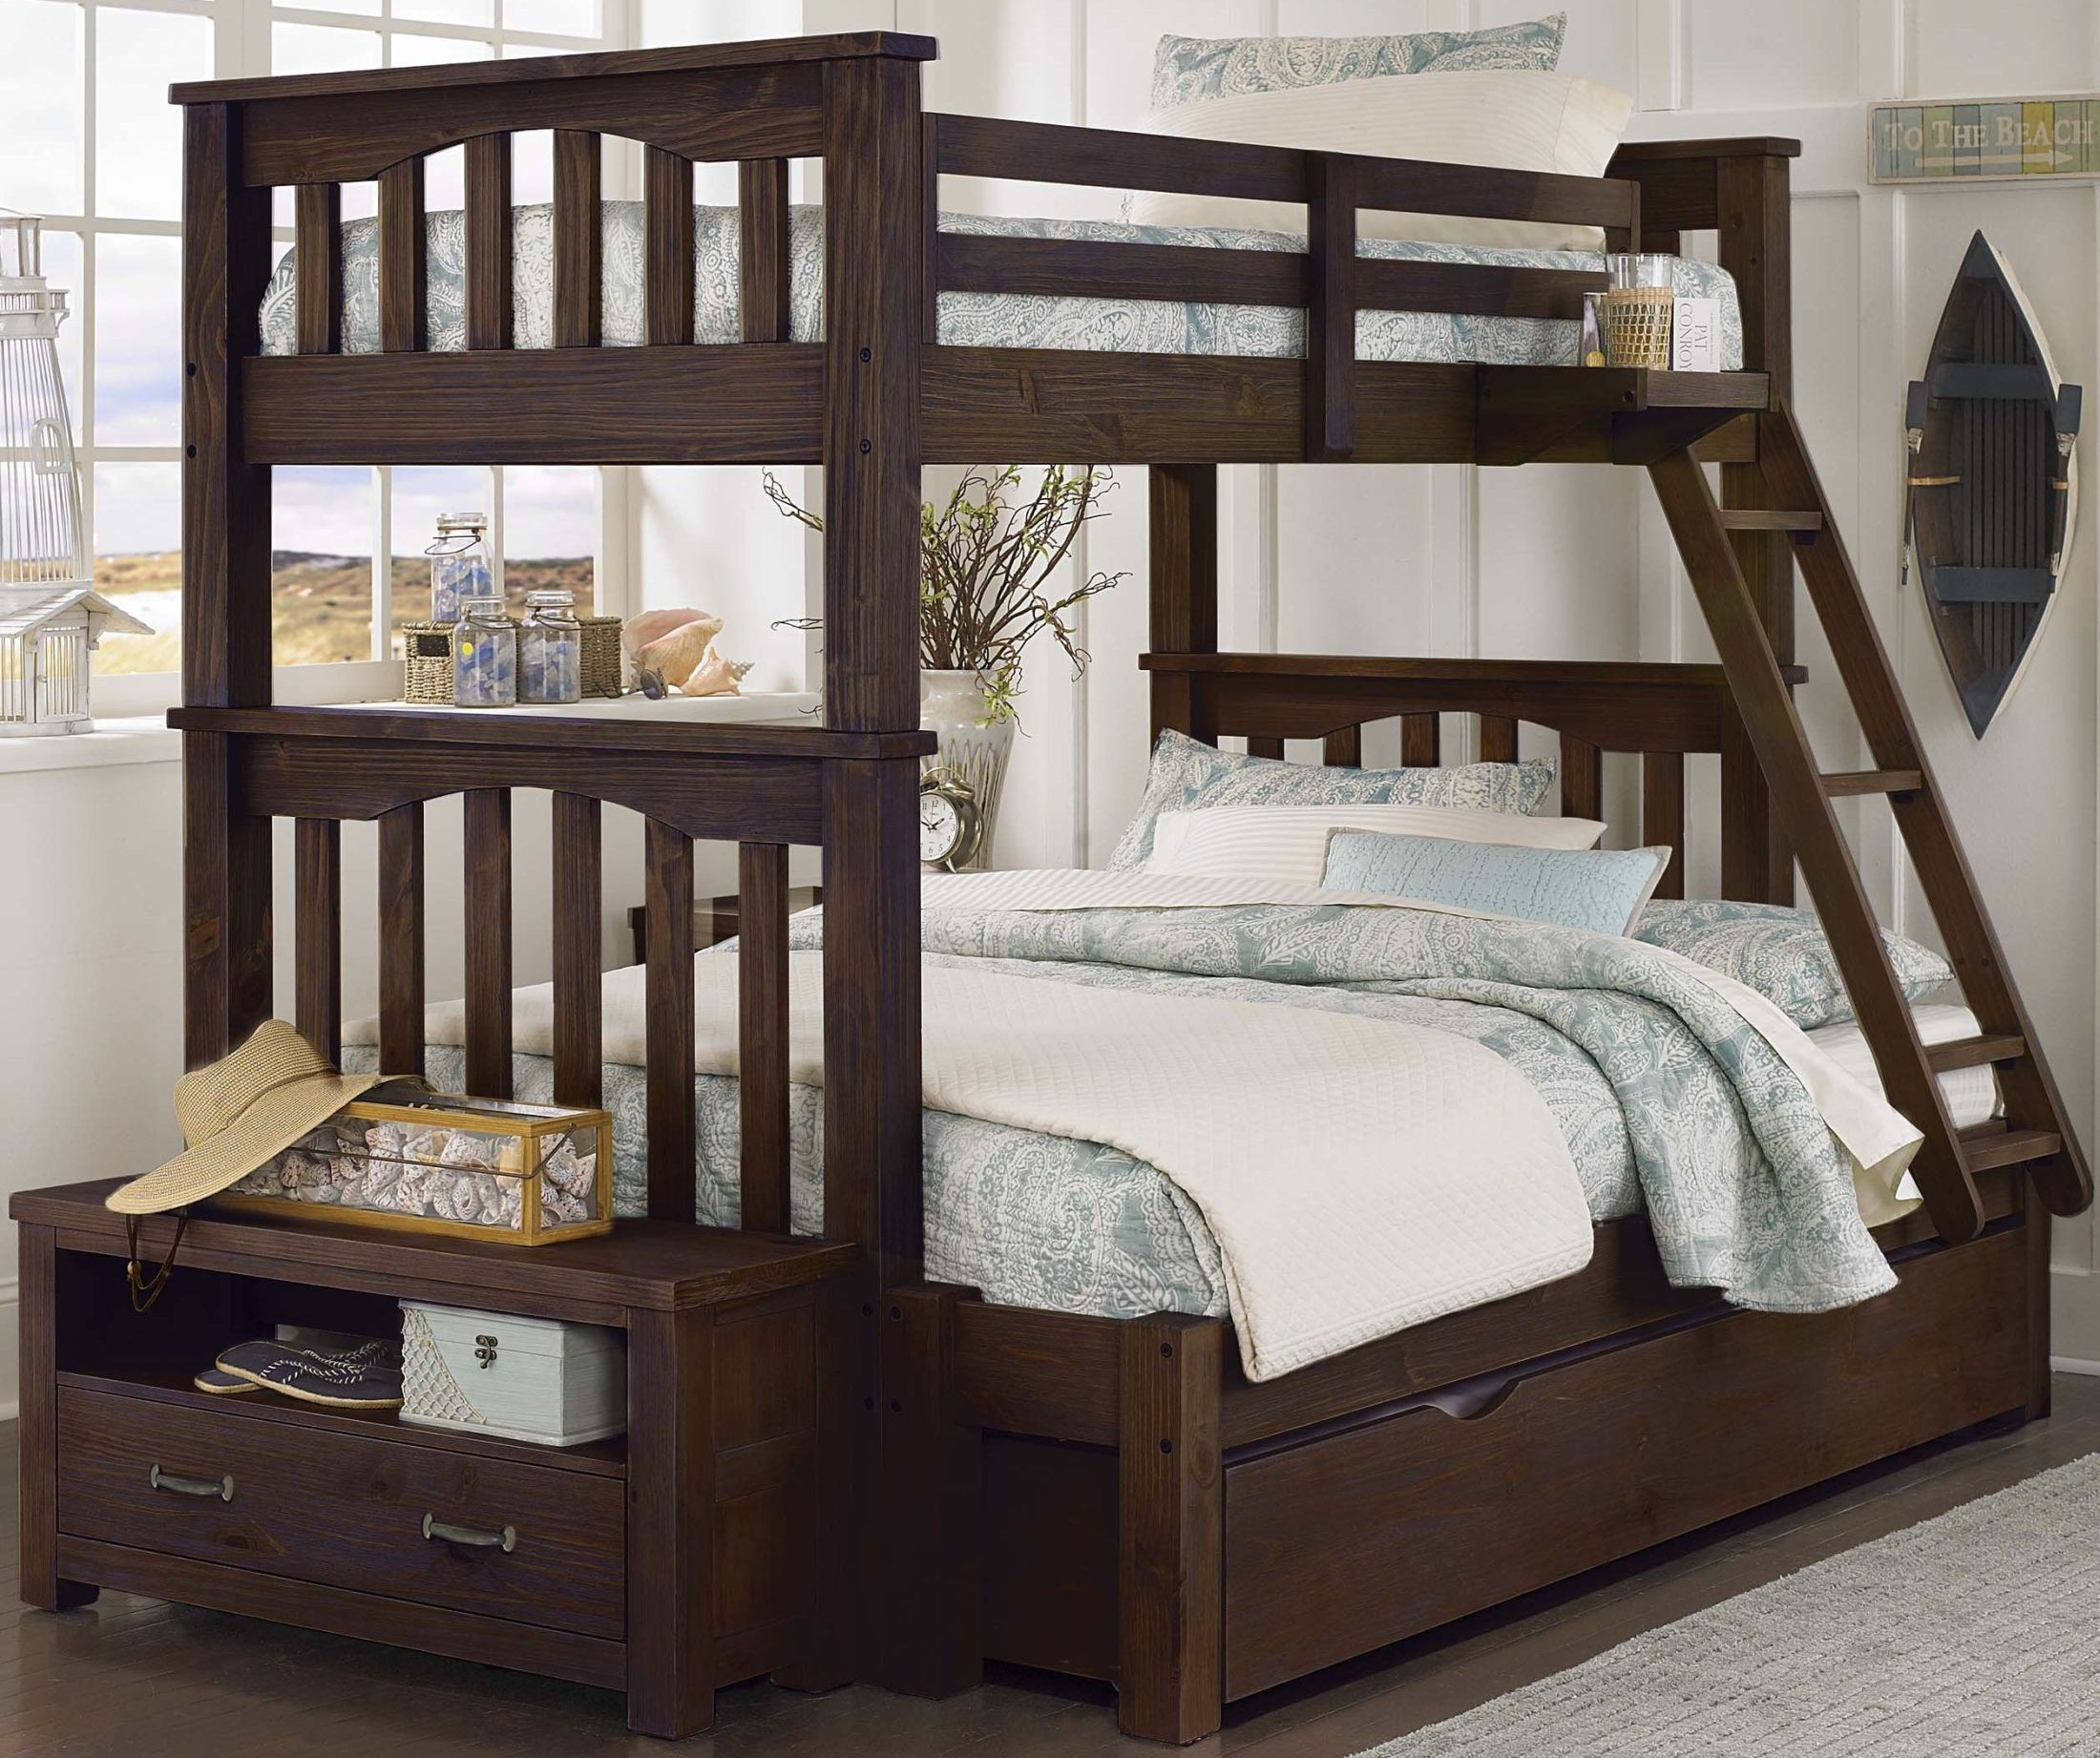 highlands harper espresso twin over full bunk bed with trundle 11055nt ne kids. Black Bedroom Furniture Sets. Home Design Ideas